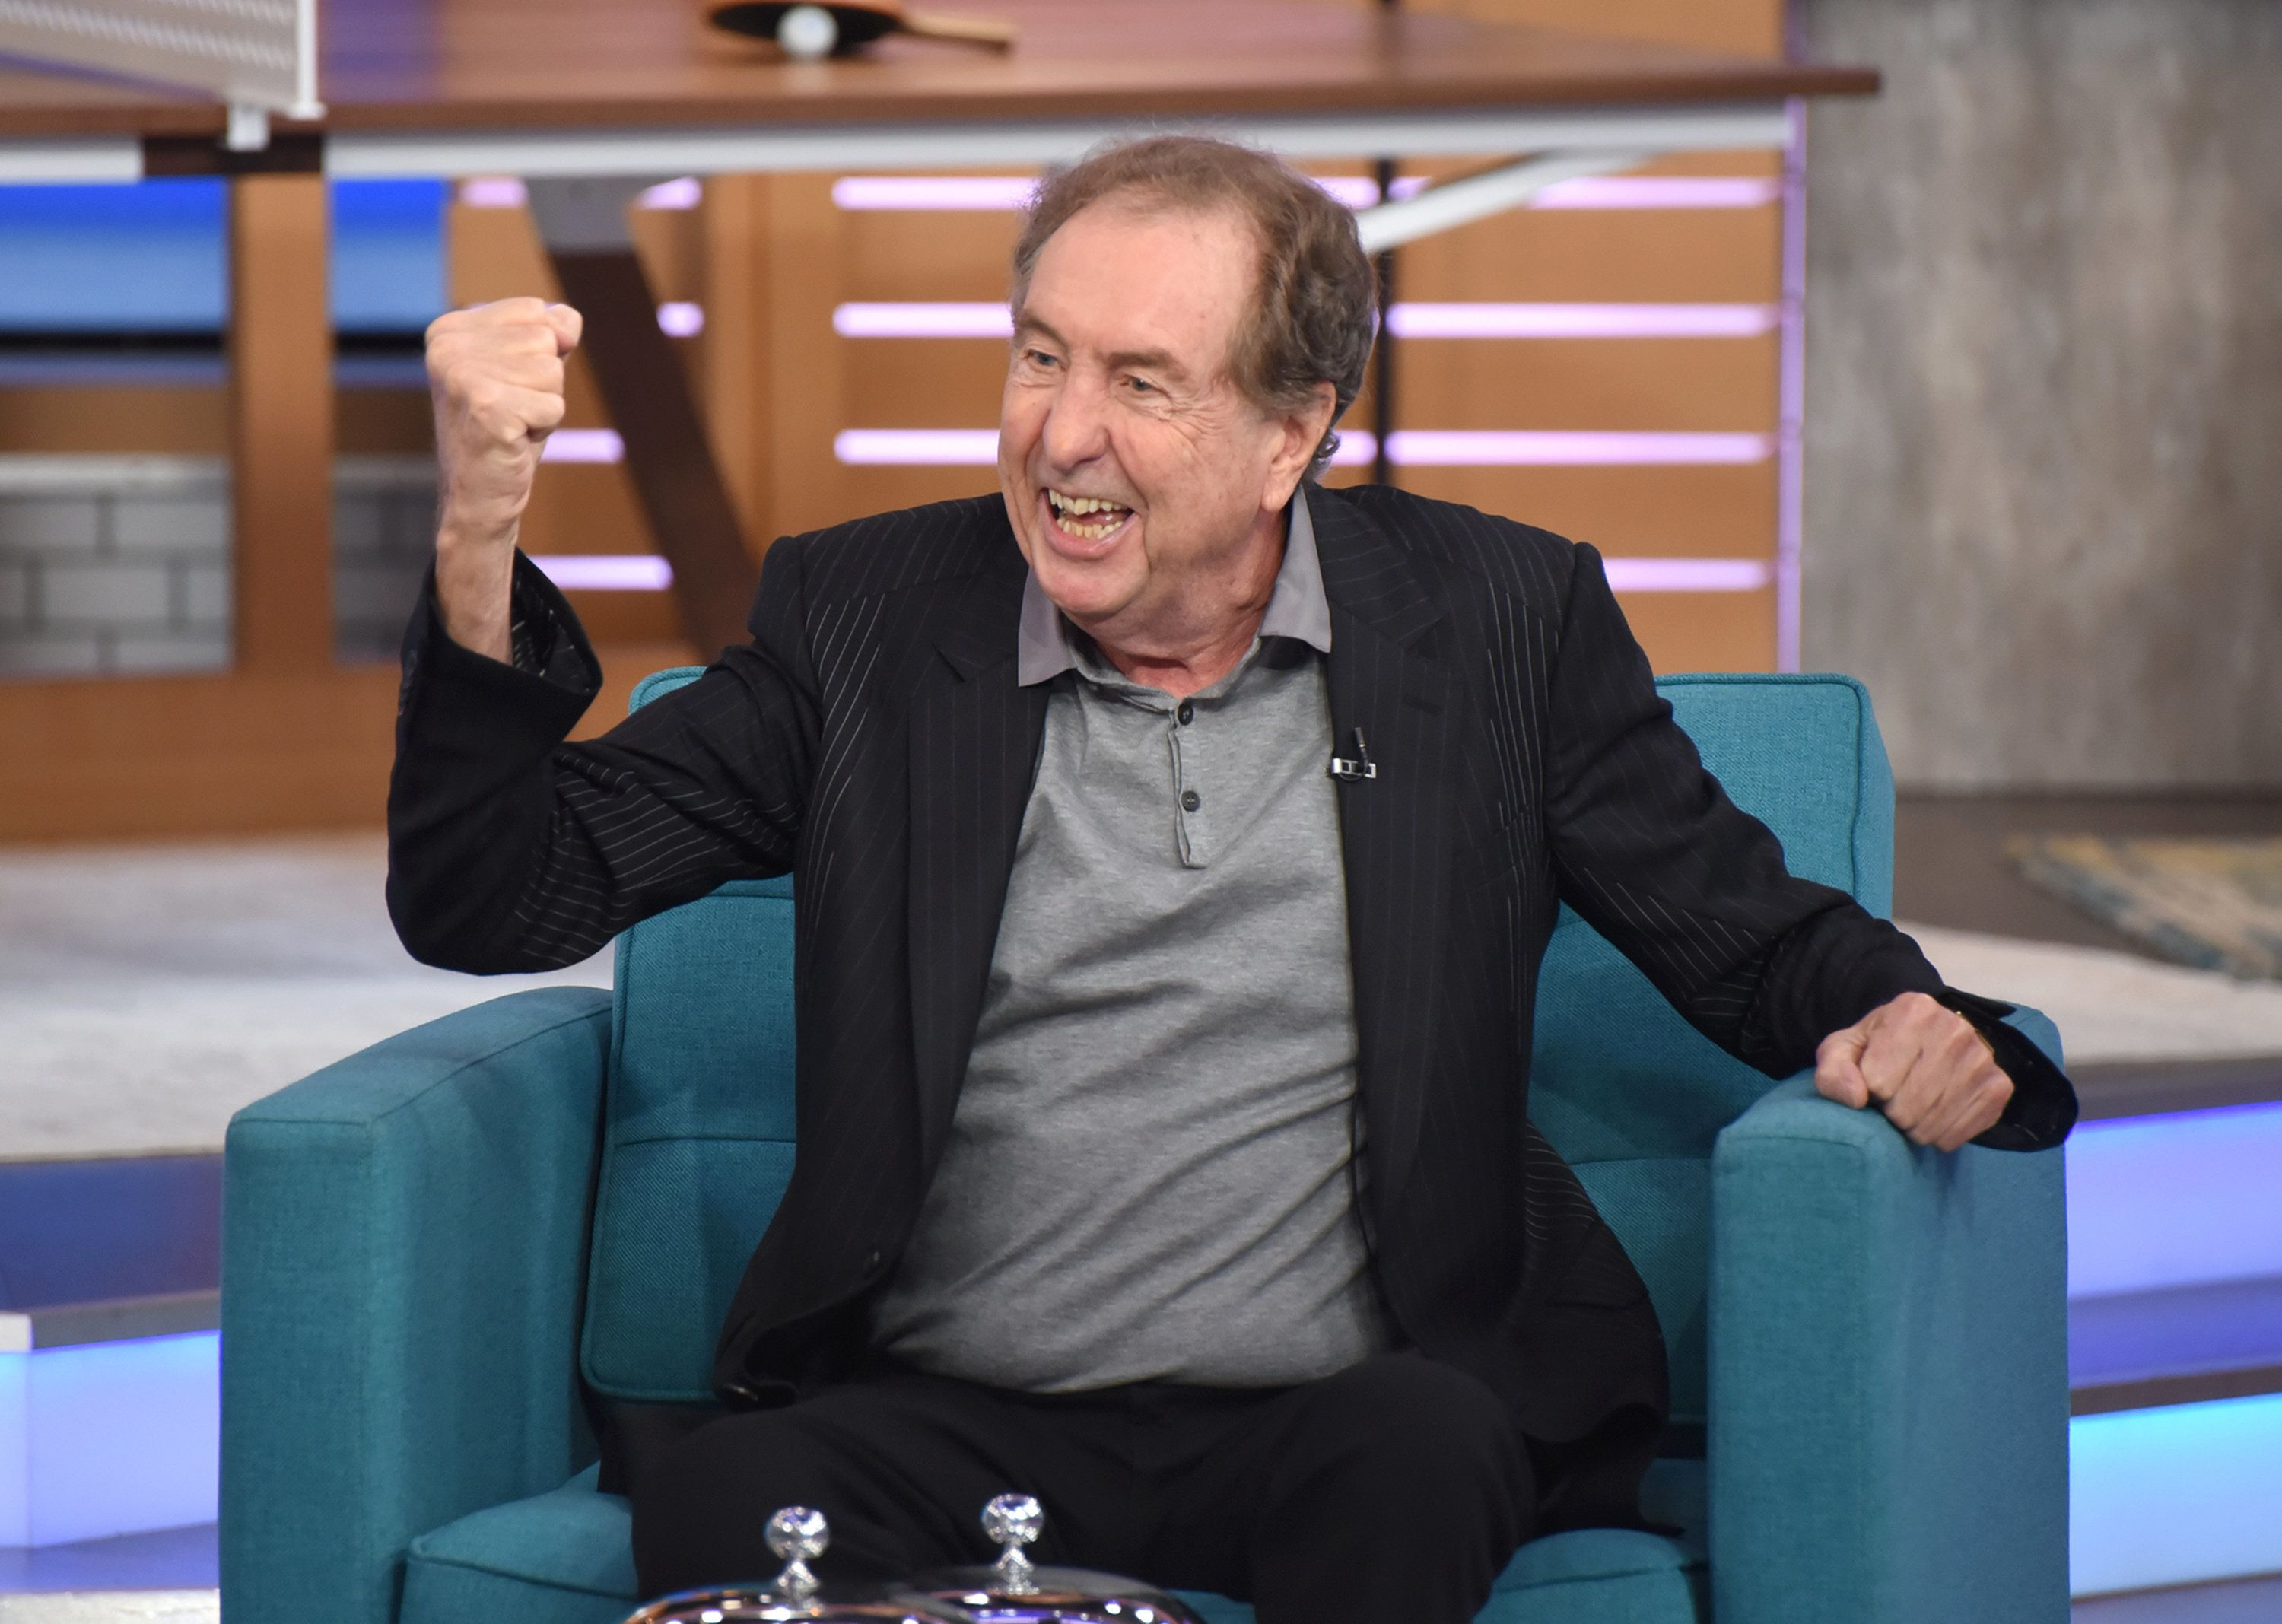 GMA DAY - Molly Shannon, Jennifer Holiday and Eric Idle are guests on 'GMA DAY,' Tuesday, October 2, 2018. 'GMA Day' airs Monday-Friday (1pm-2pm, ET) on the ABC Television Network.    GMADay18 (Photo by Paula Lobo/ABC via Getty Images)   ERIC IDLE